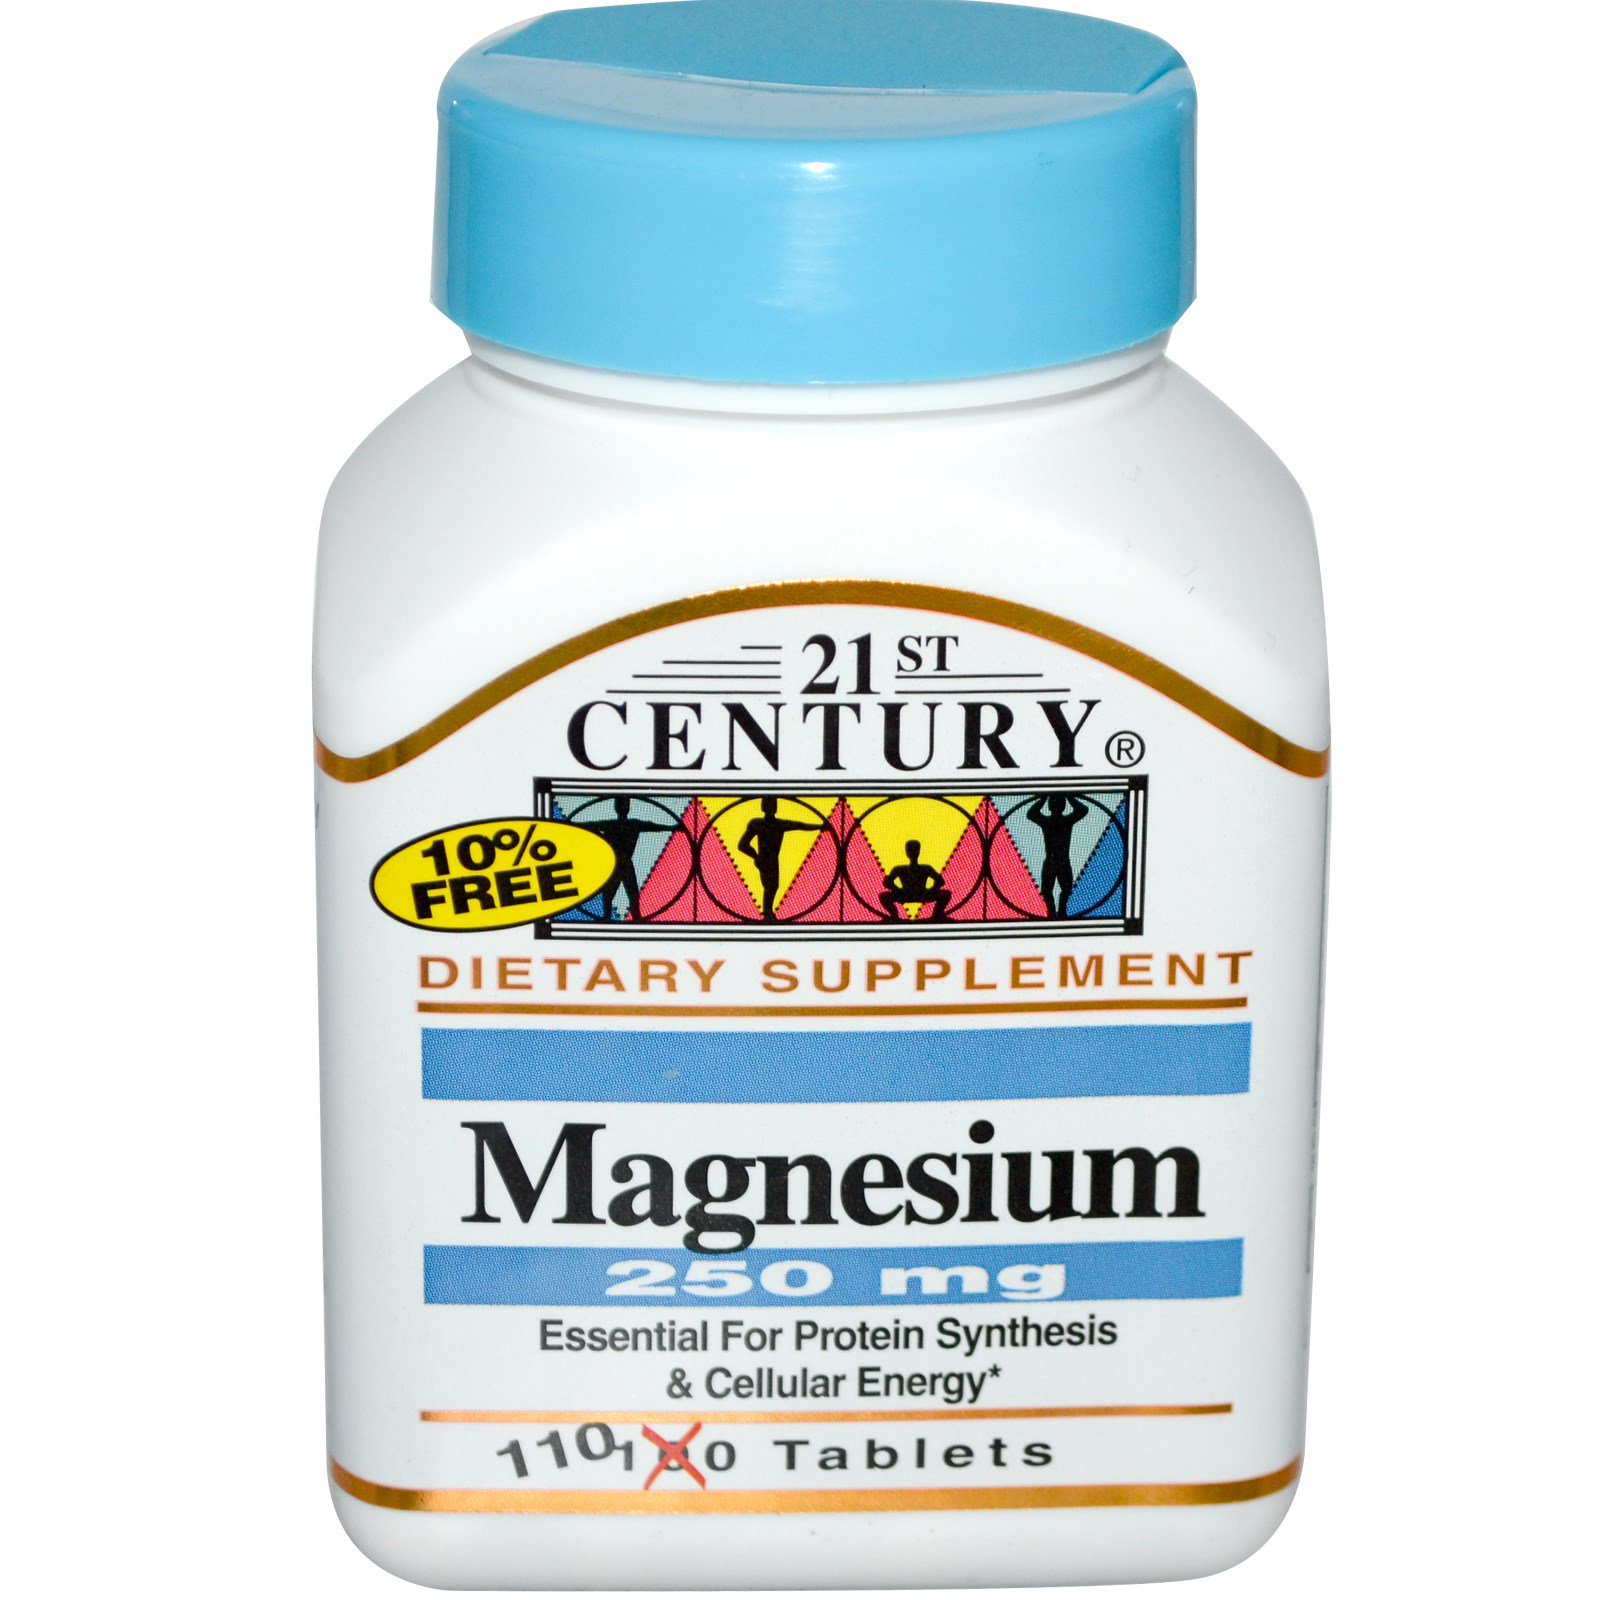 Magnesium Blackmores Total Calcium D3 200 Tablet 21st Century 250 Mg 110 Tablets